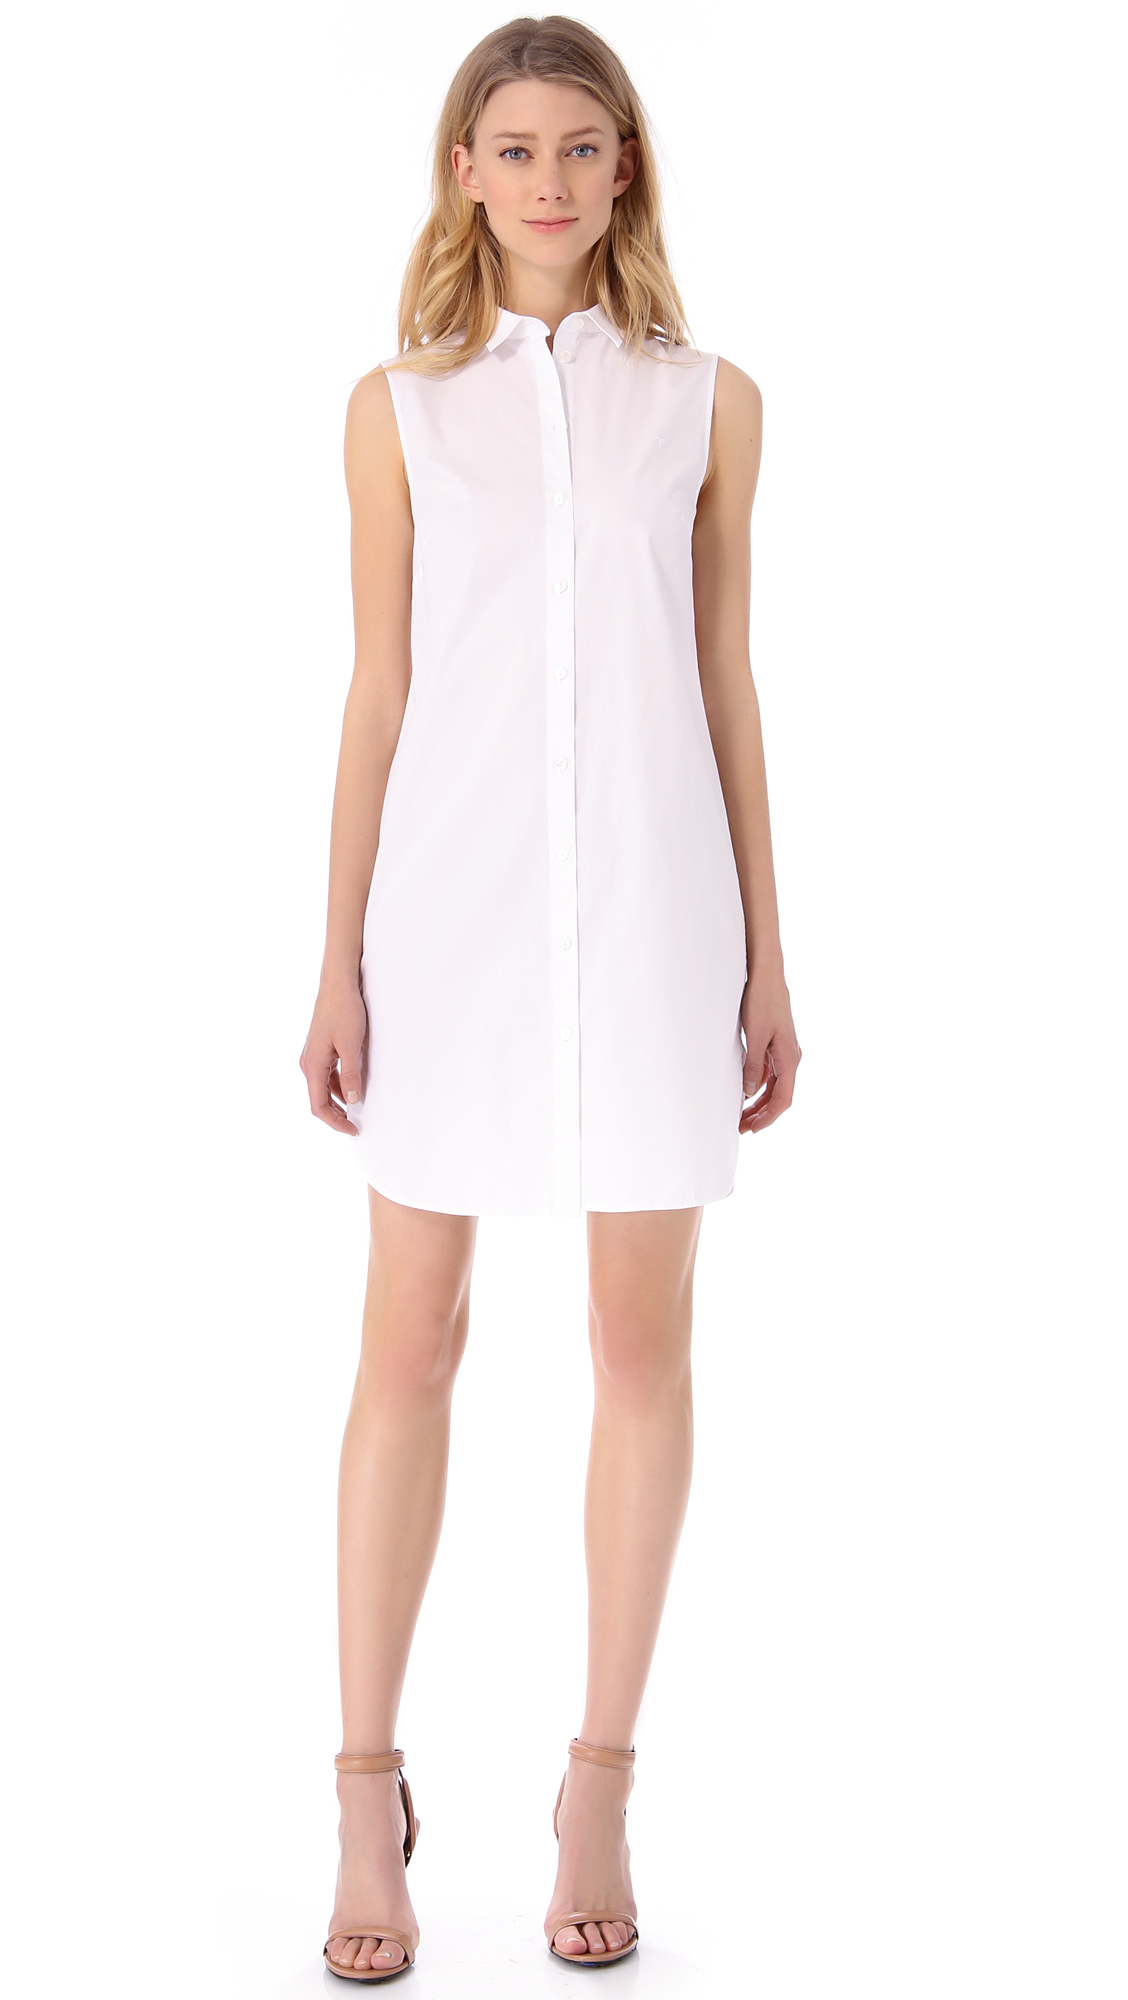 lyst t by alexander wang sleeveless shirt dress in white